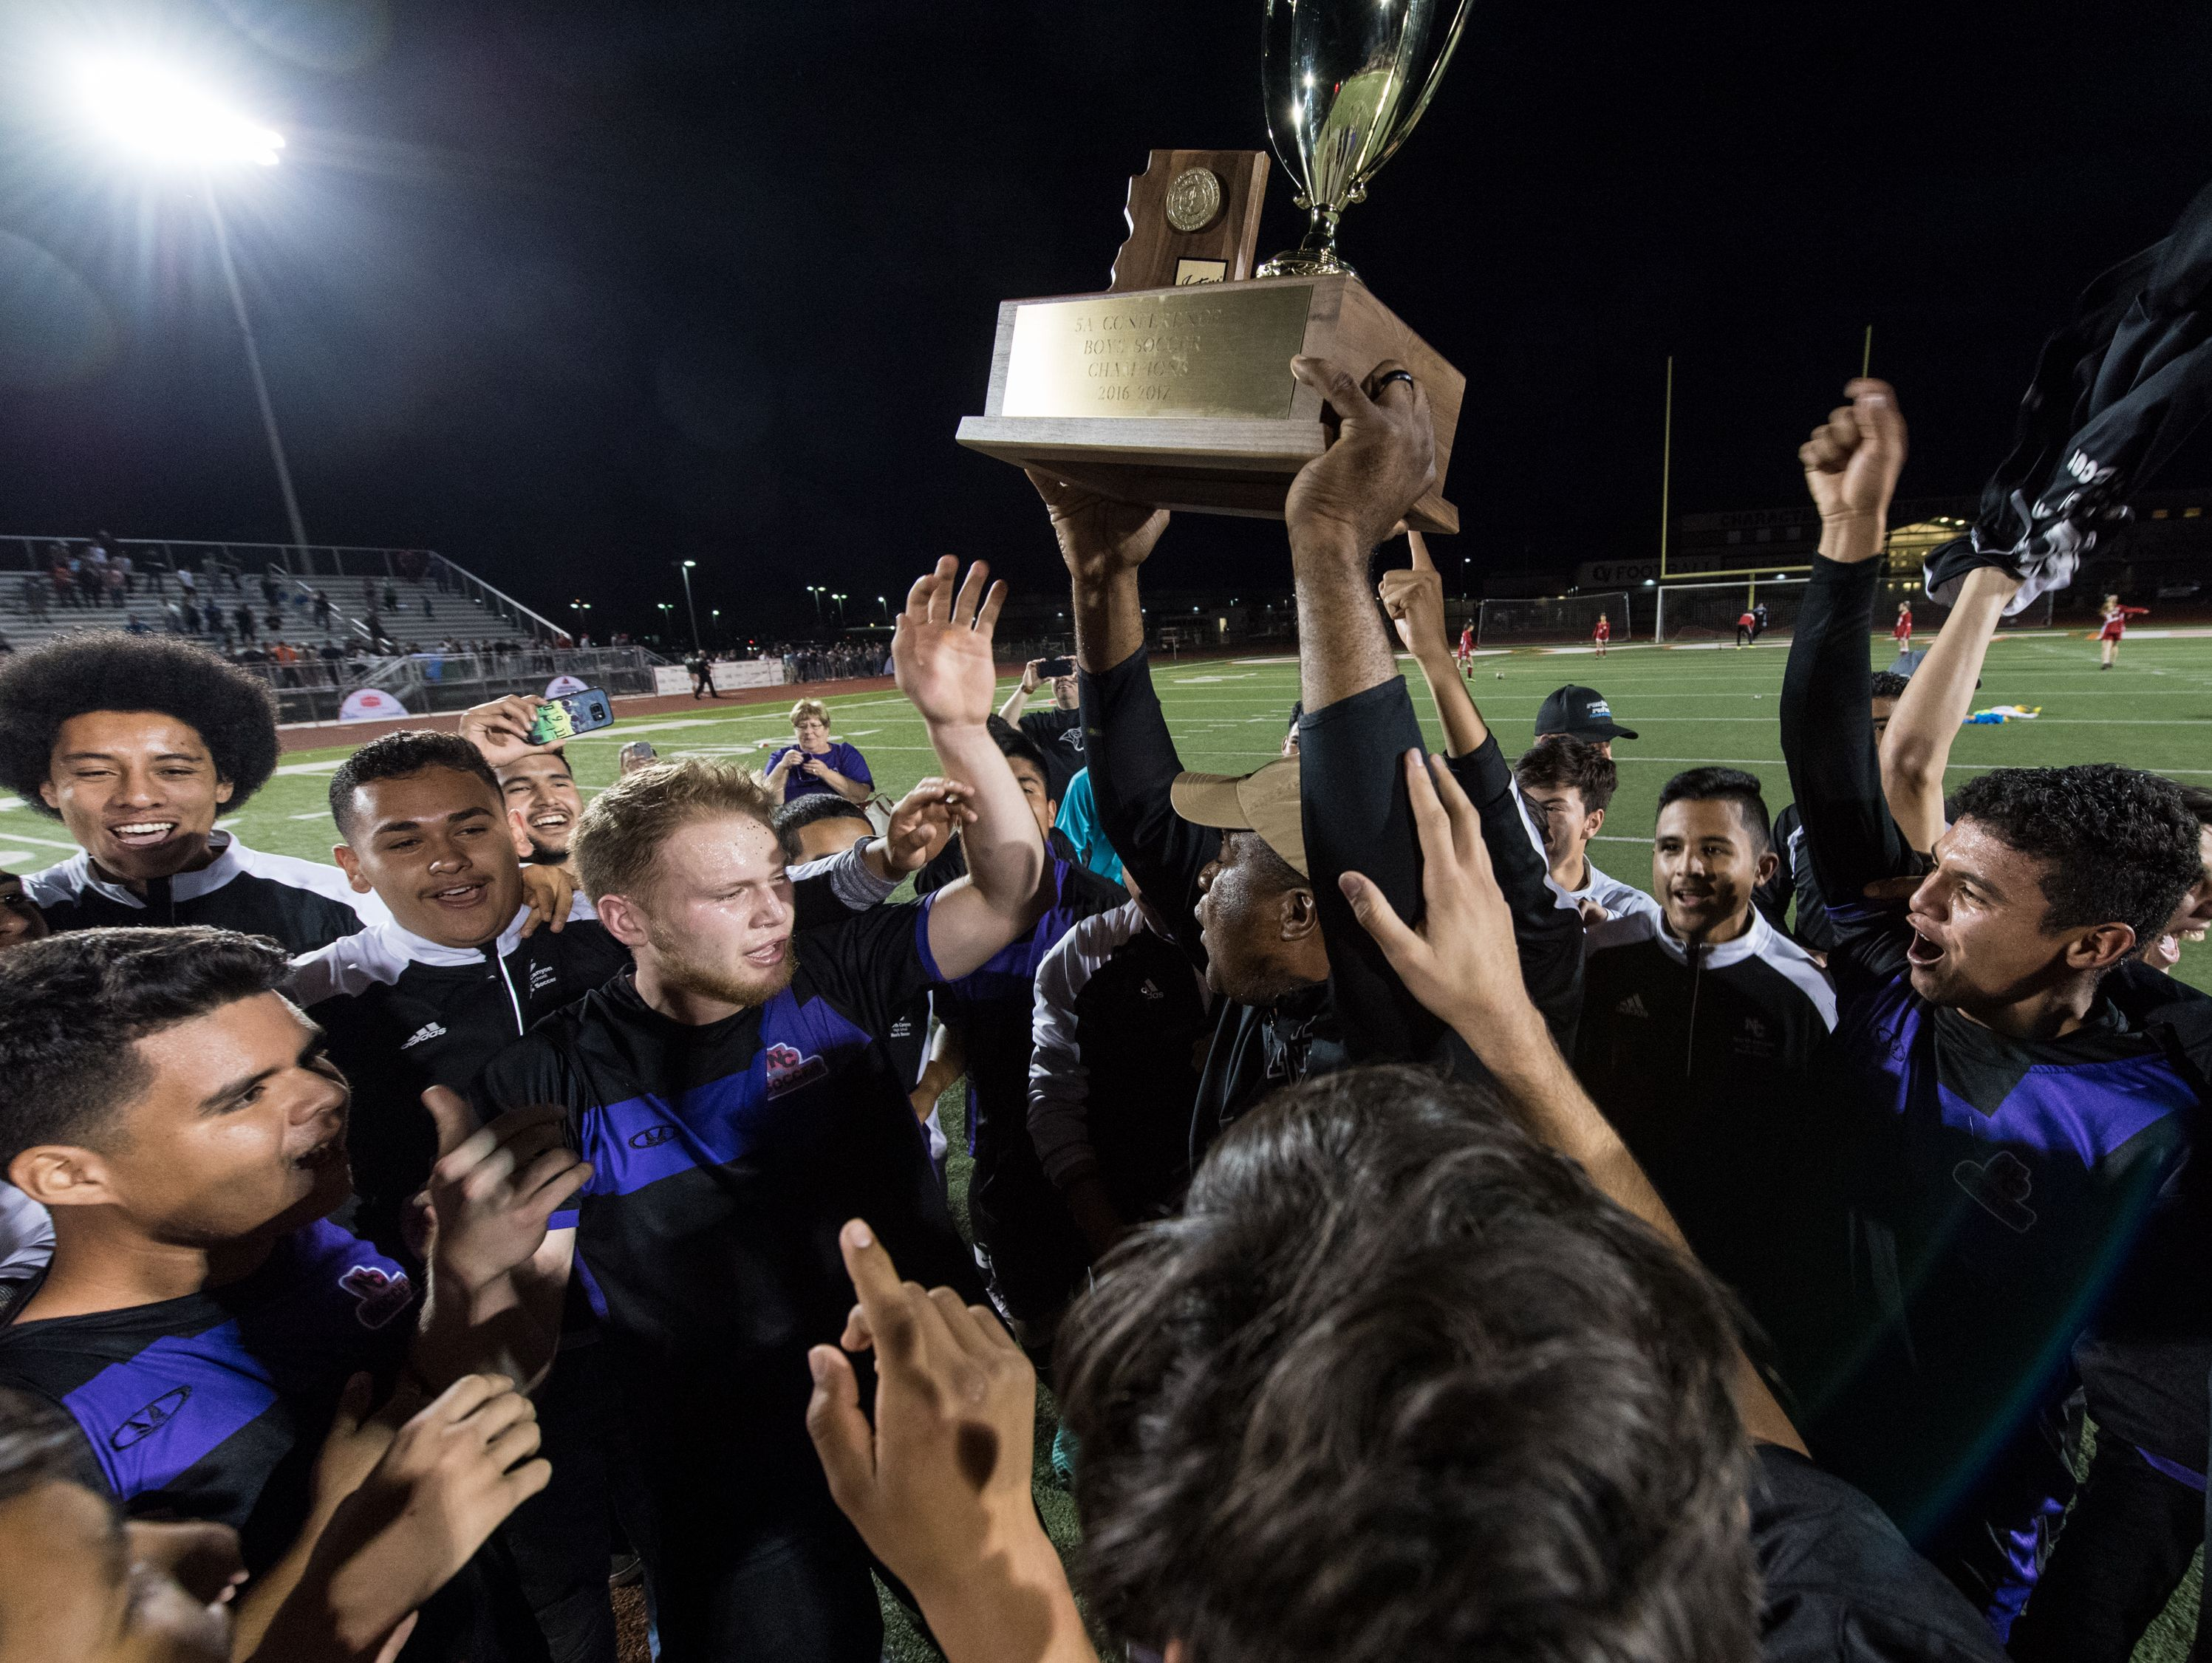 North Canyon receive their 5A Conference state championship trophy on Saturday, Feb. 11, 2017, at Campo Verde High School in Gilbert, Ariz.